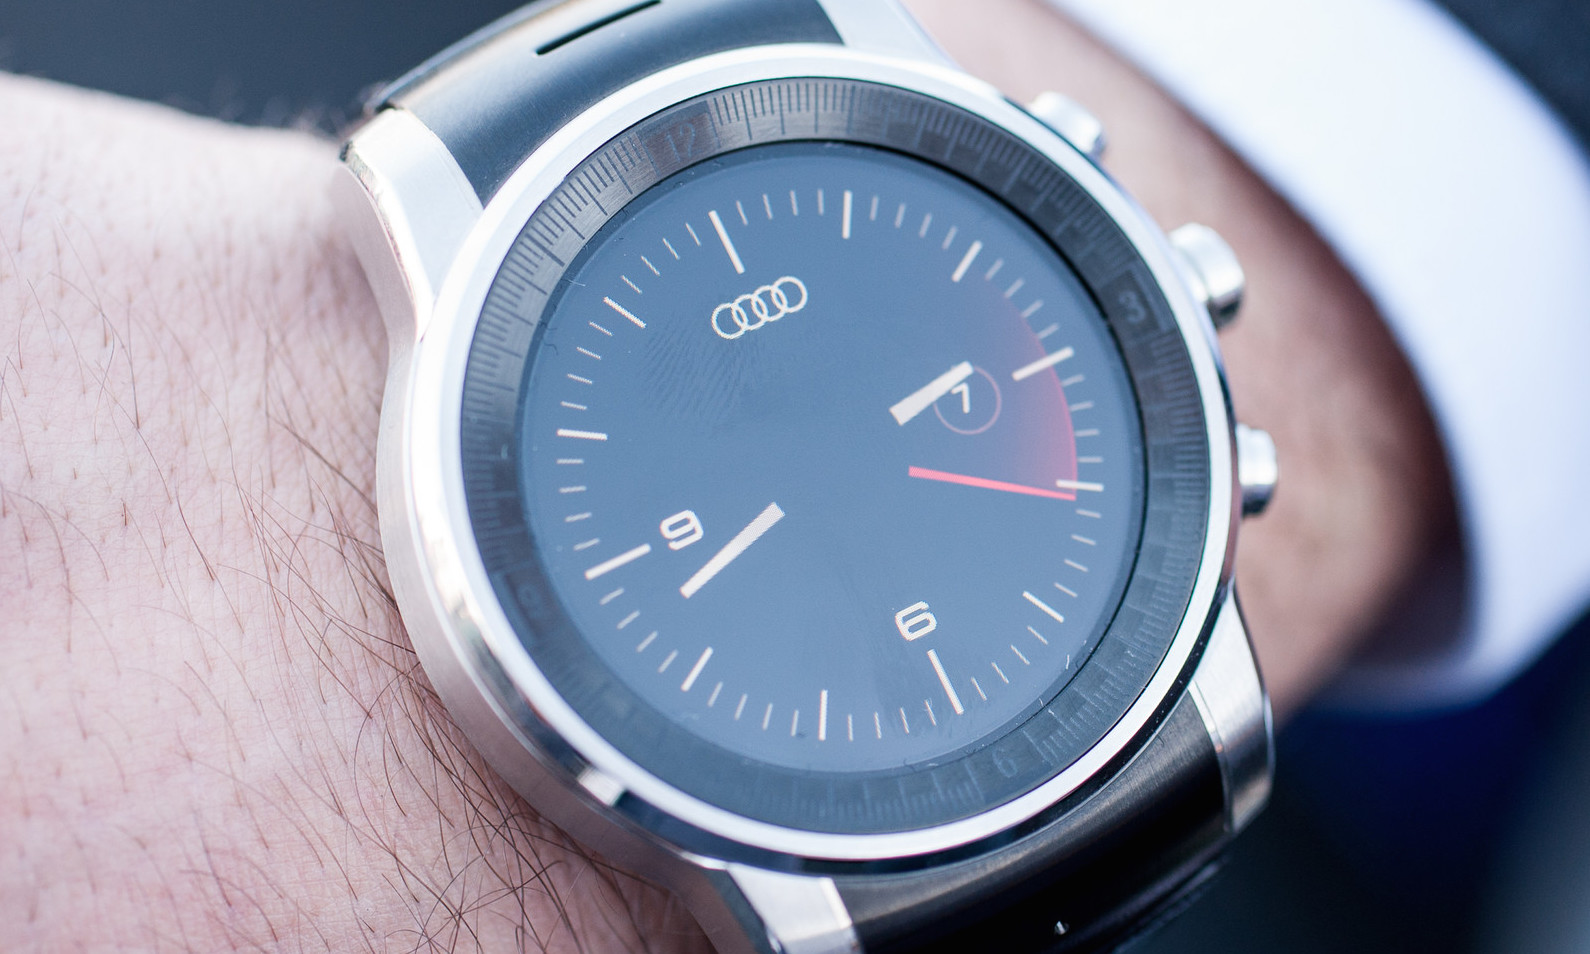 The Best Looking Smartwatch Wasn't Even On Display at CES